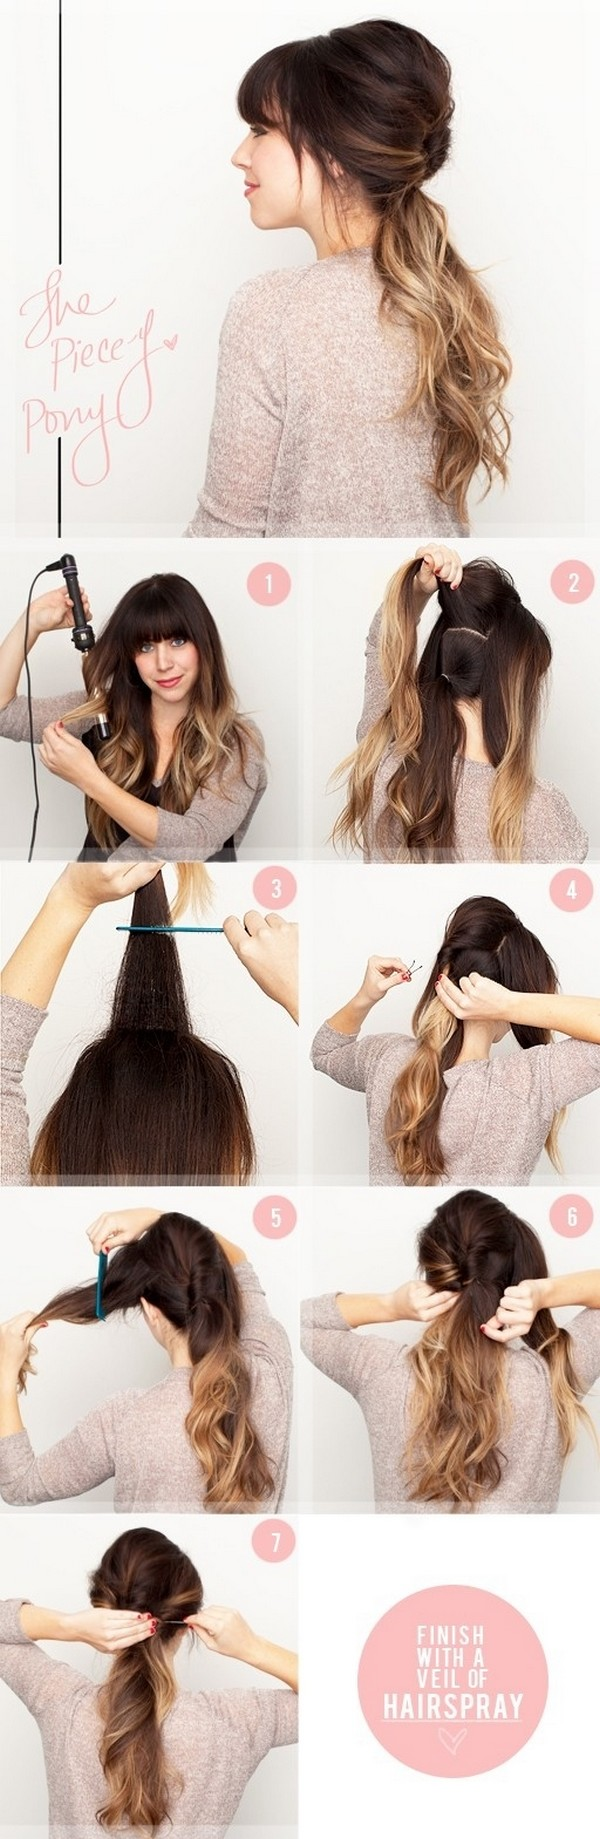 Stylish-Ponytail-Hairstyle-trends-with-Tutorials (12)